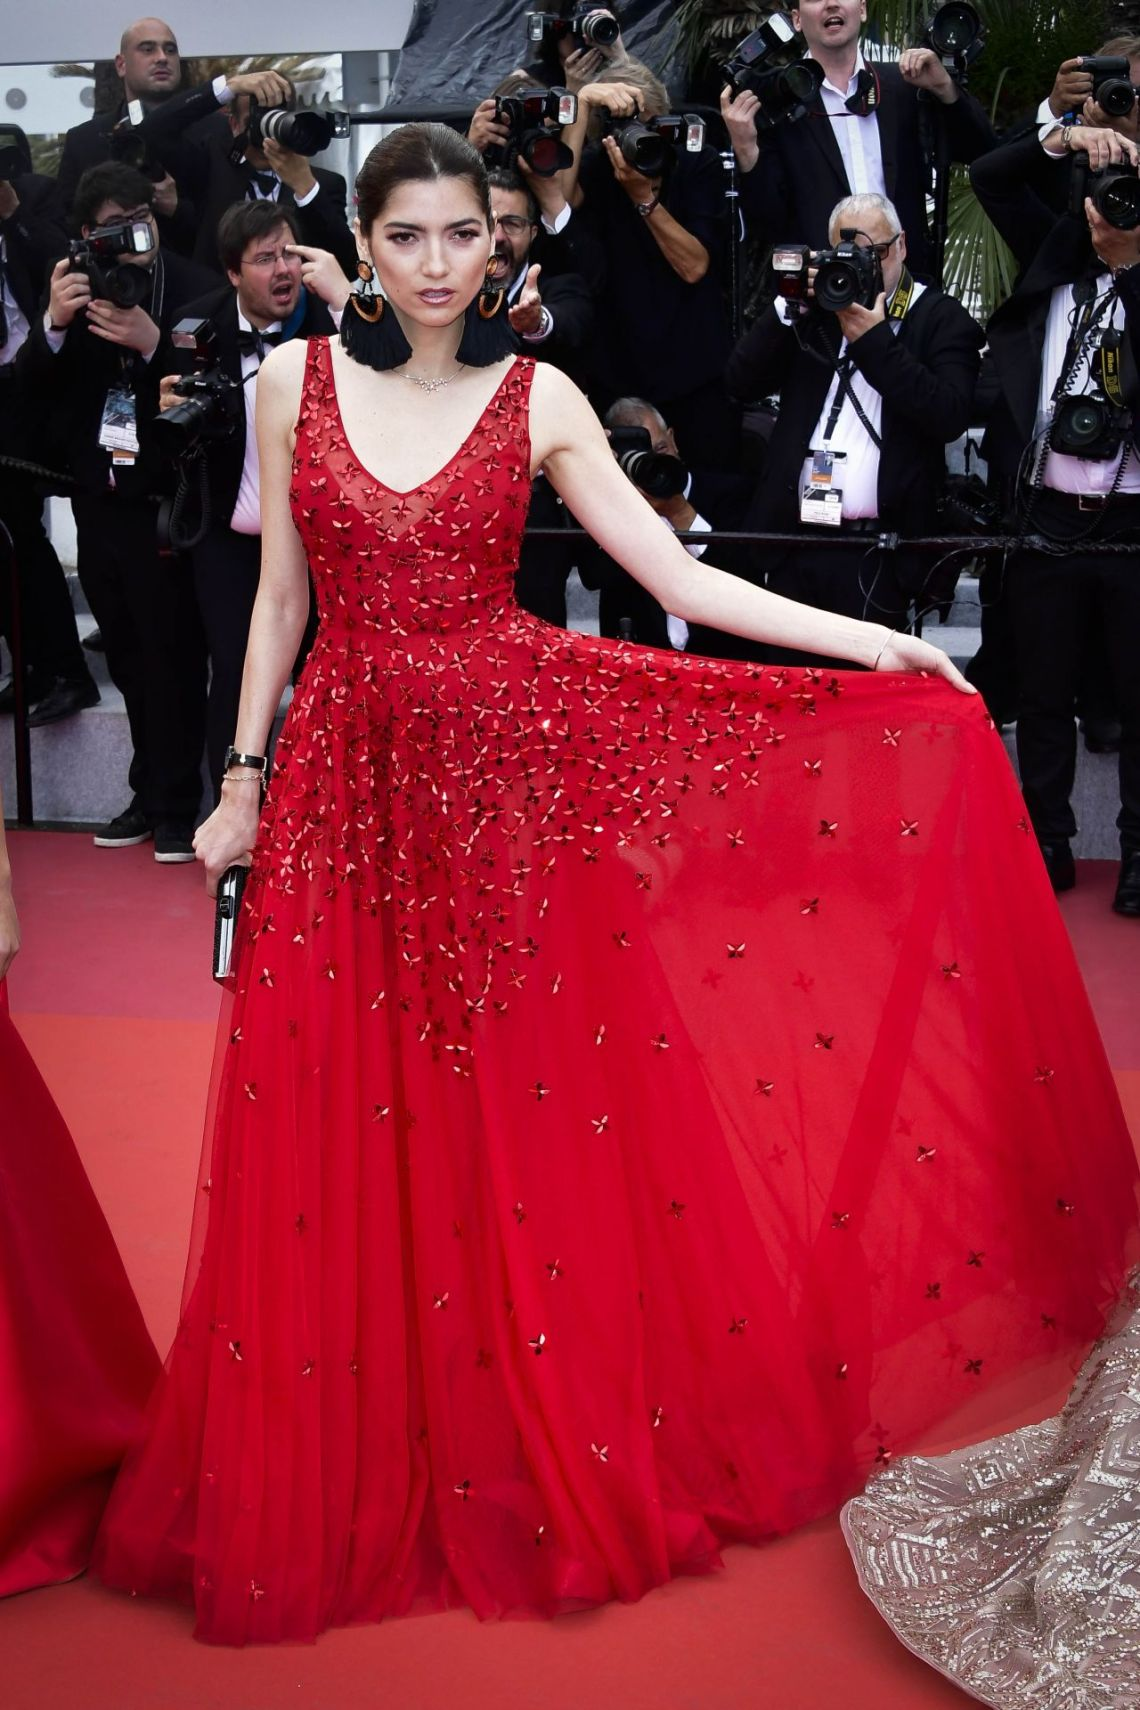 blanca-blanco-the-wild-pear-tree-red-carpet-in-cannes-3christopheguillarme